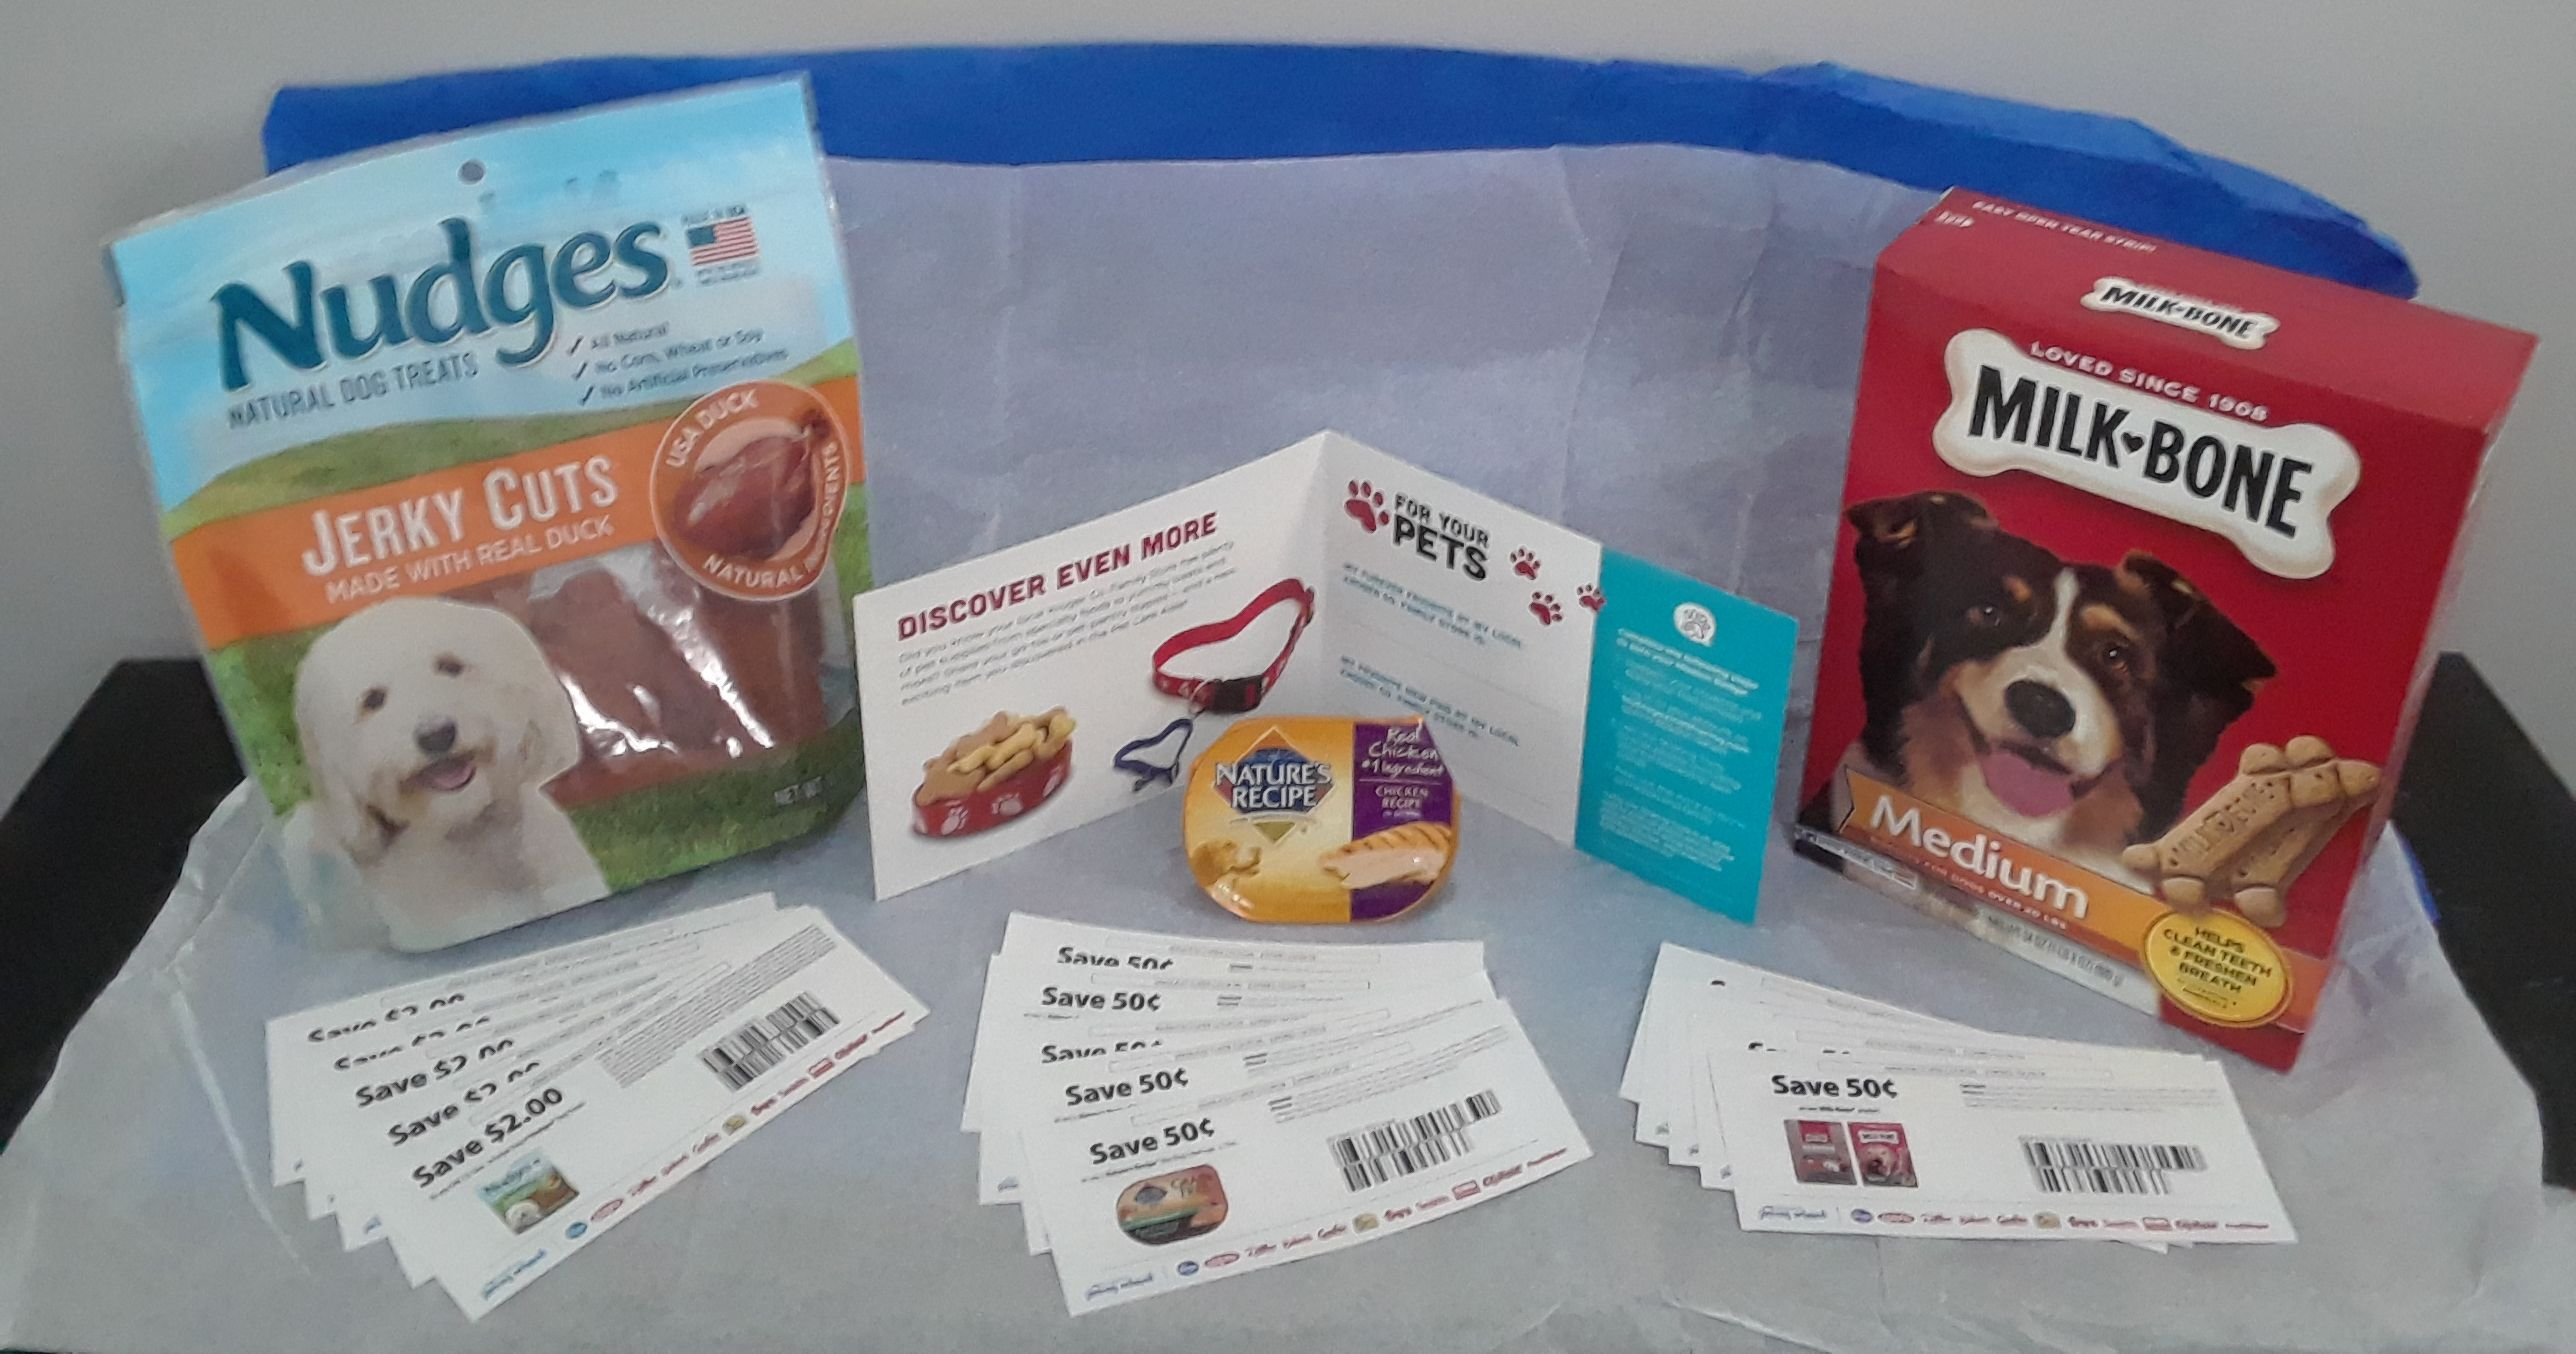 Pin On Free Products Coupons From My Magazine Sharing Network